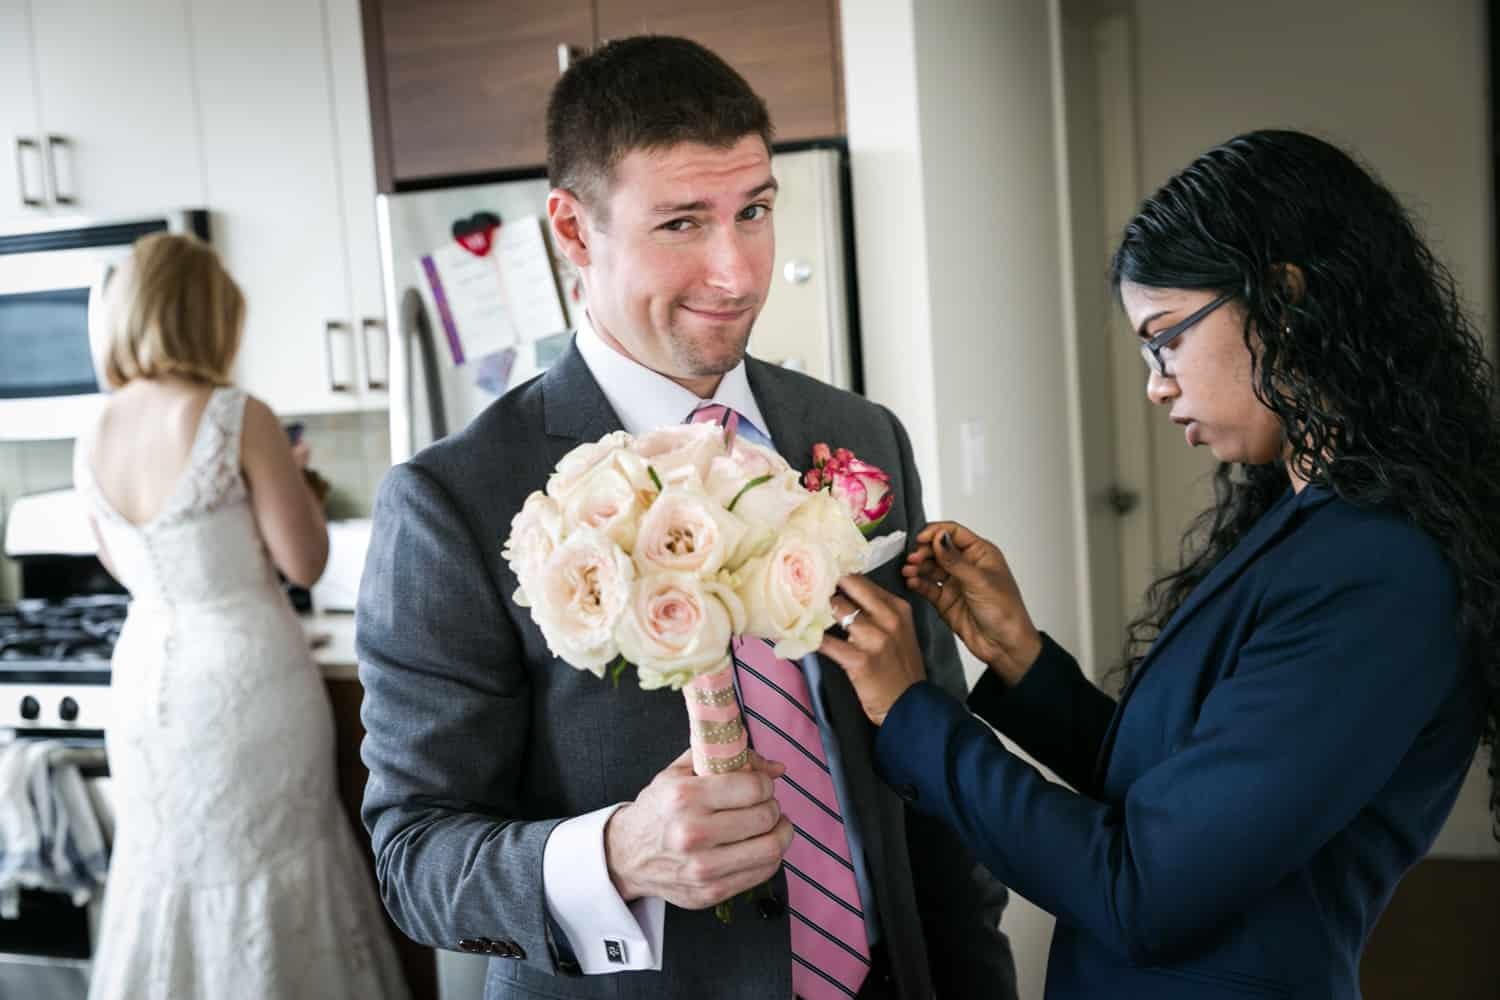 Groom holding bride's bouquet and having pocket square adjusted